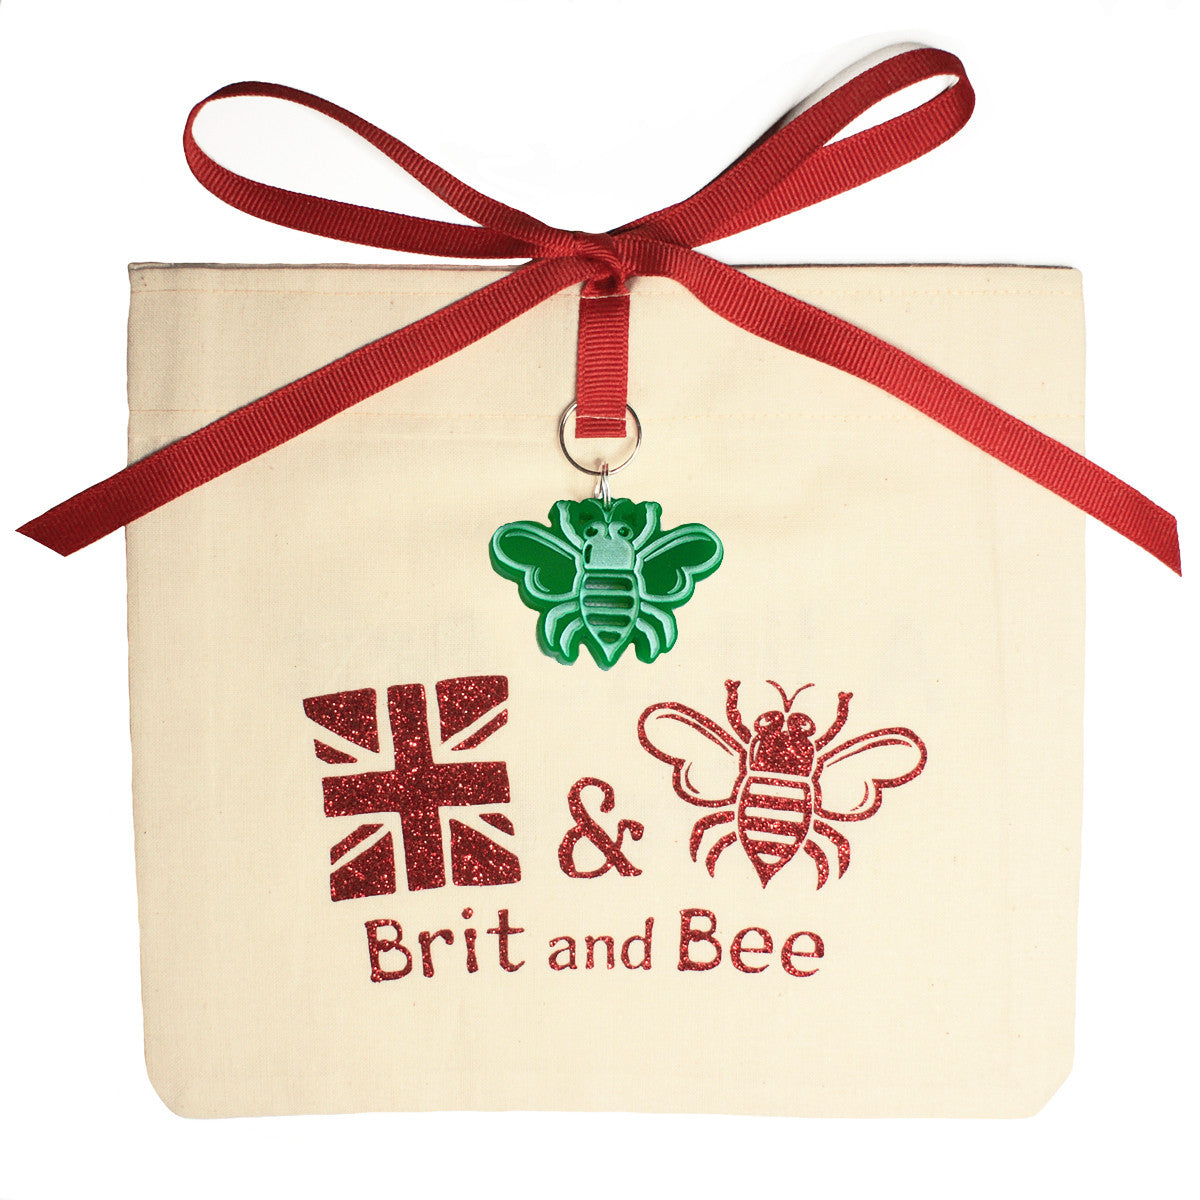 Brit and Bee Sorority Monogram Coaster - Alpha Gamma Delta